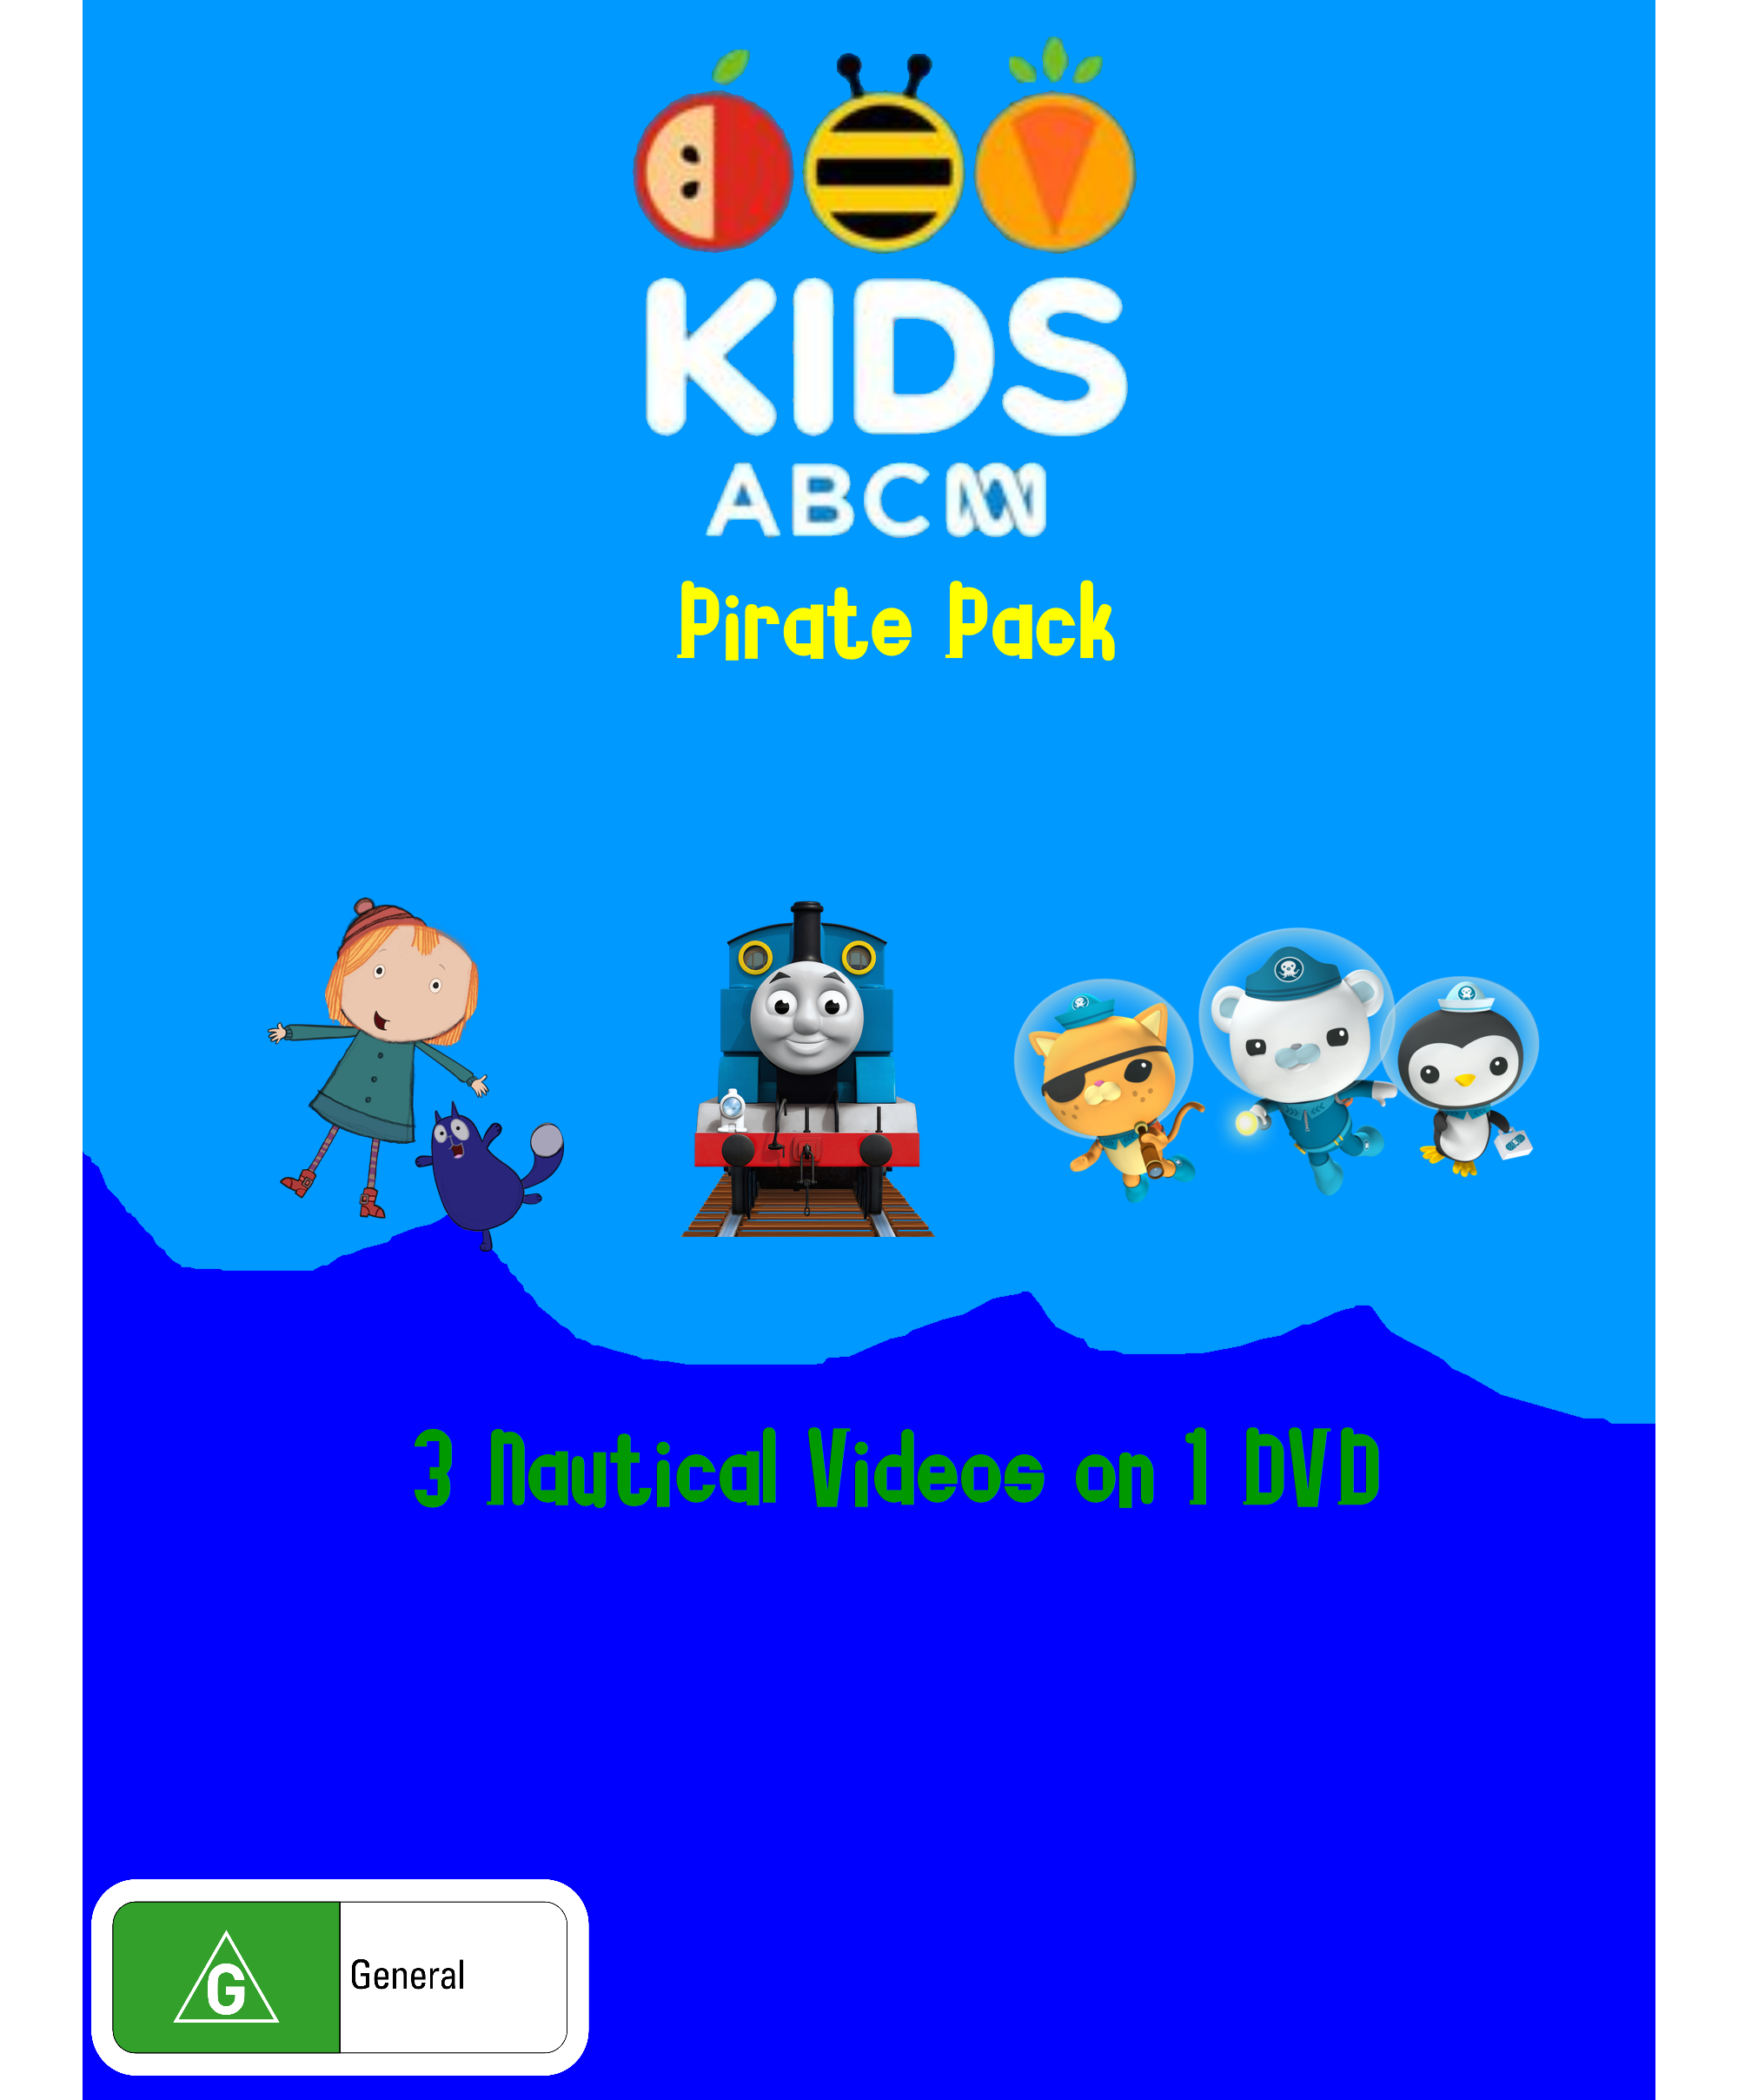 ABC For Kids: Pirate Pack (video)